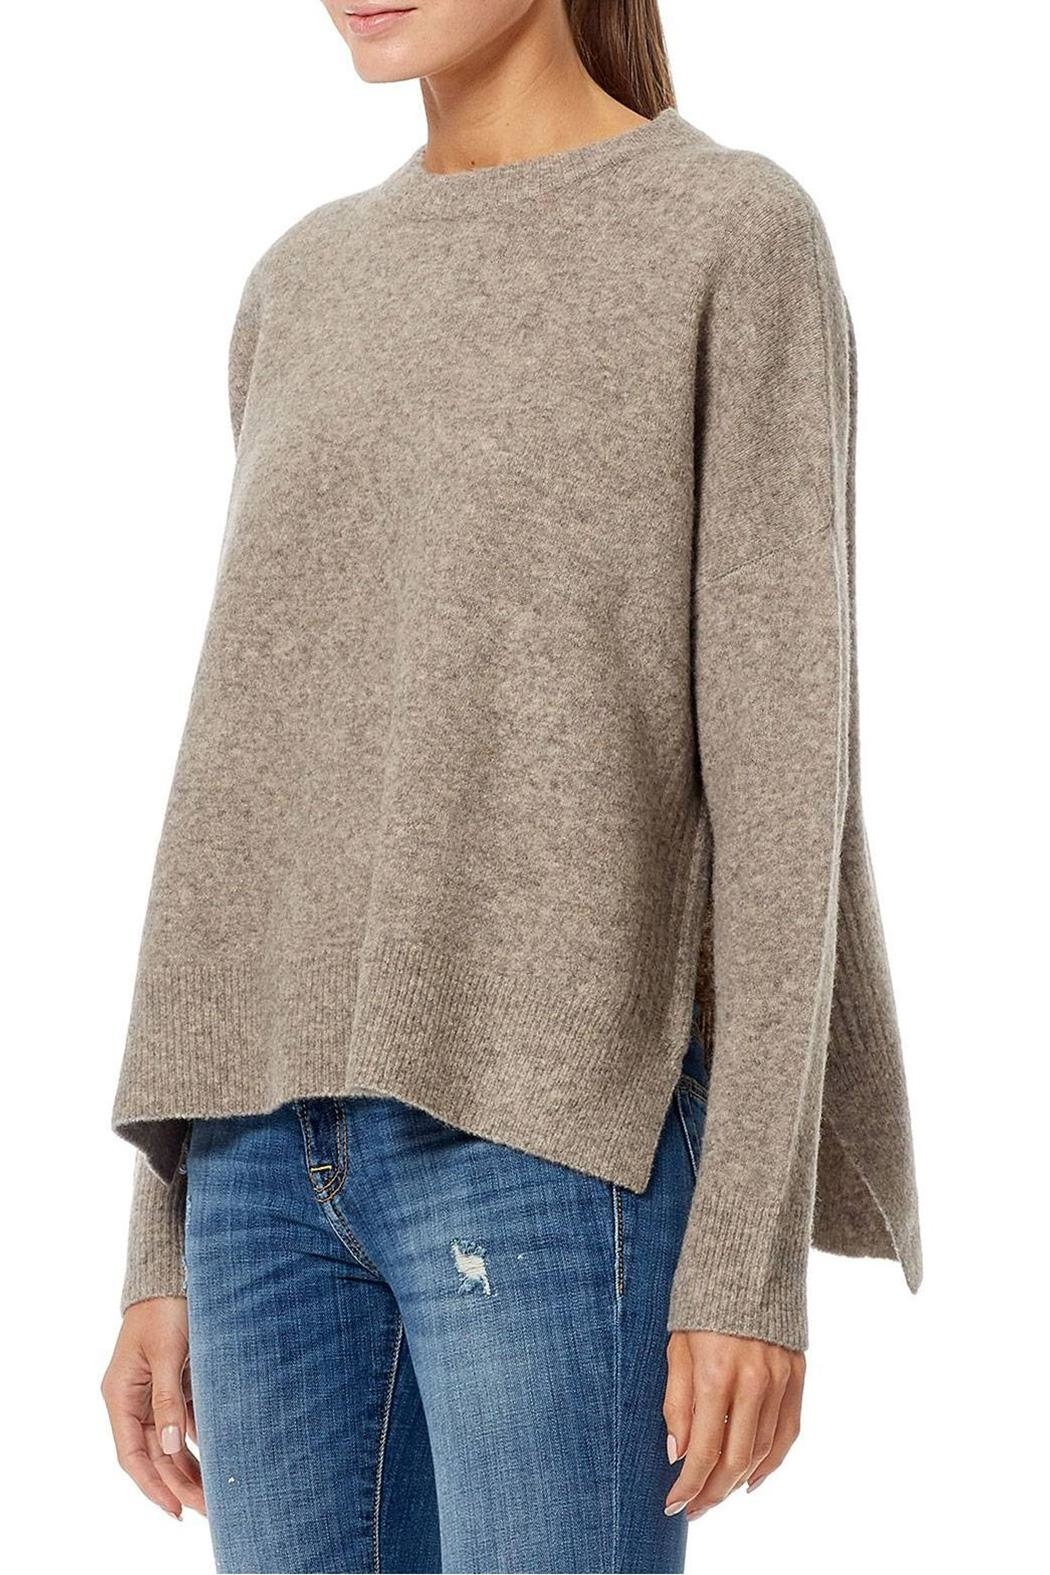 360 Cashmere Hanna Crew Neck Top - Front Full Image